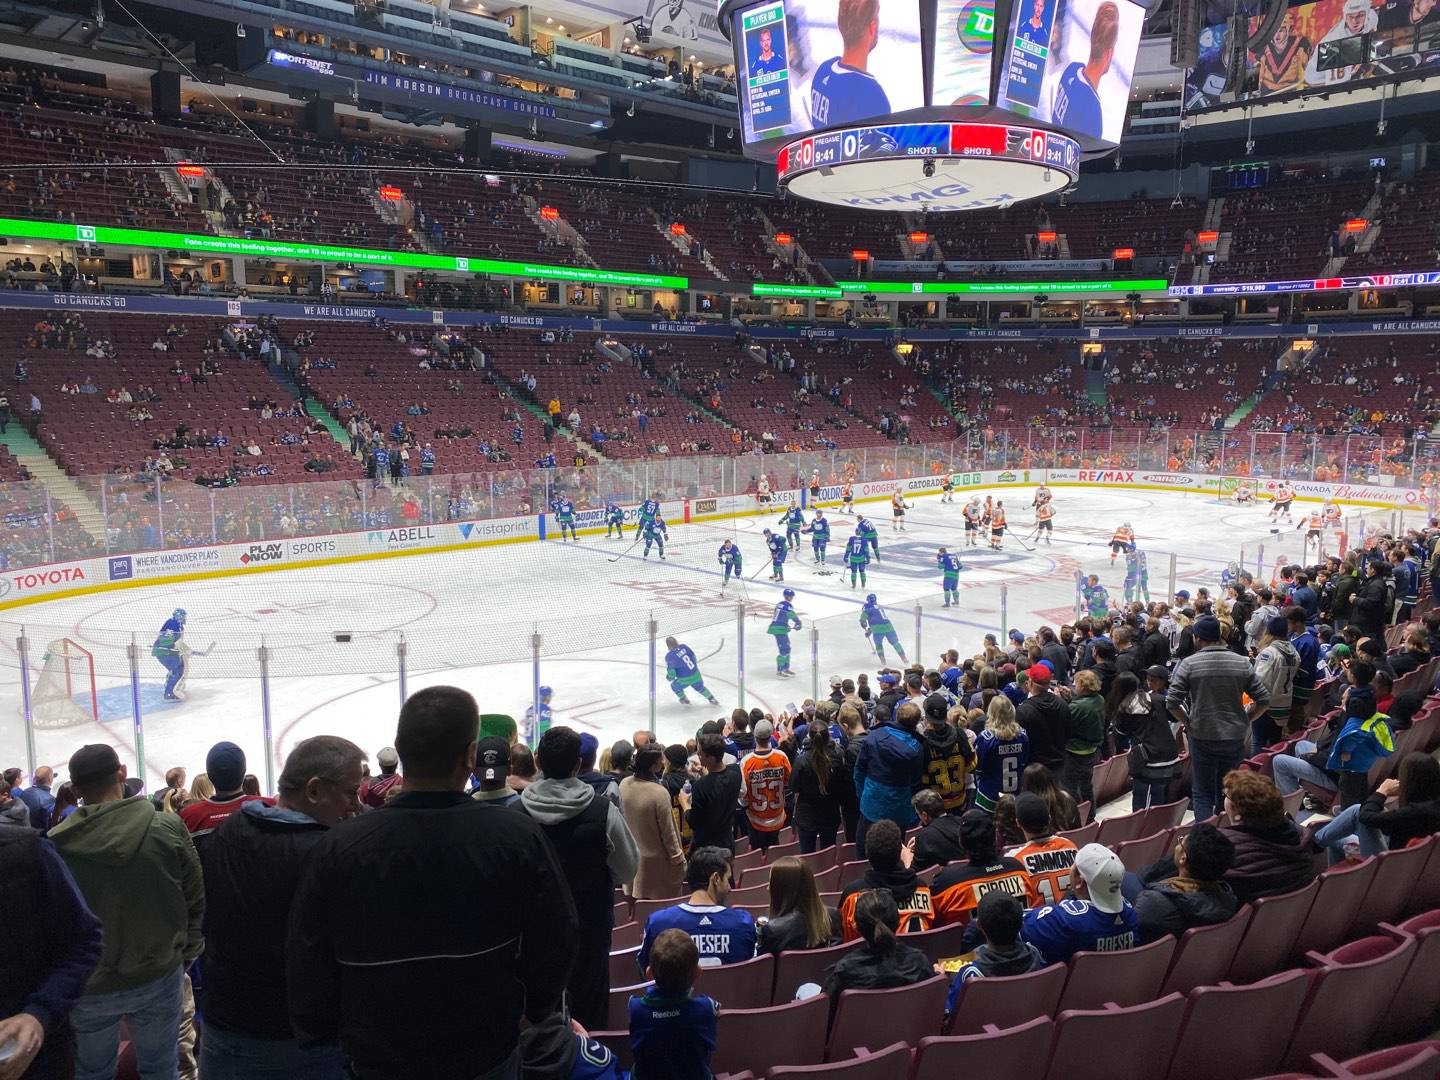 Rogers Arena Section 120 Row 16 Seat 3